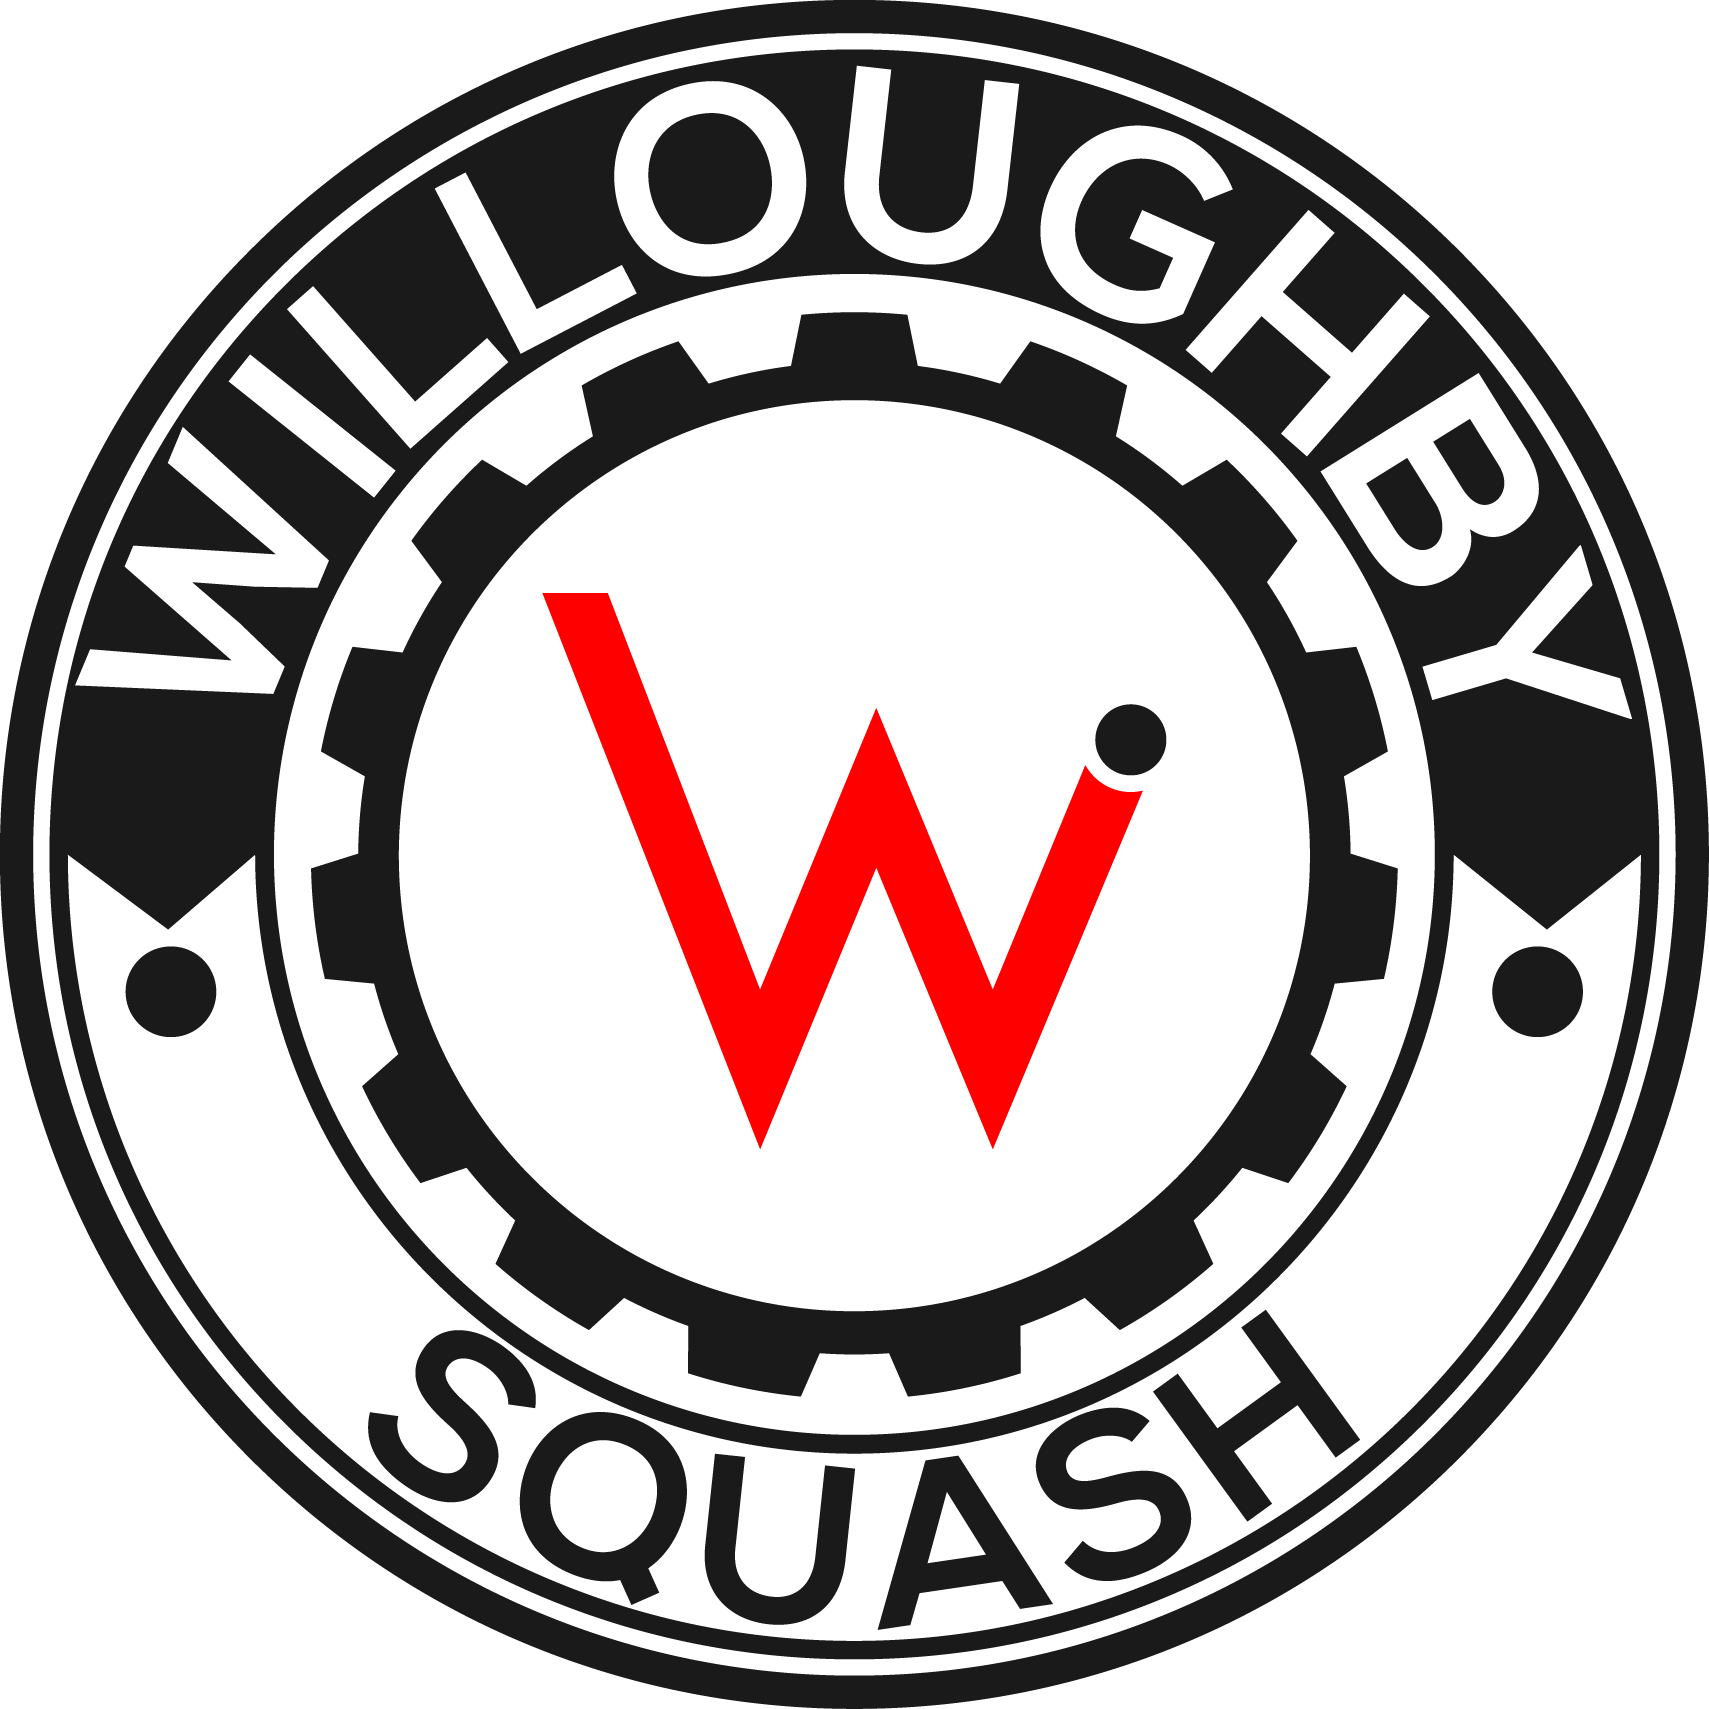 Willoughby Squash